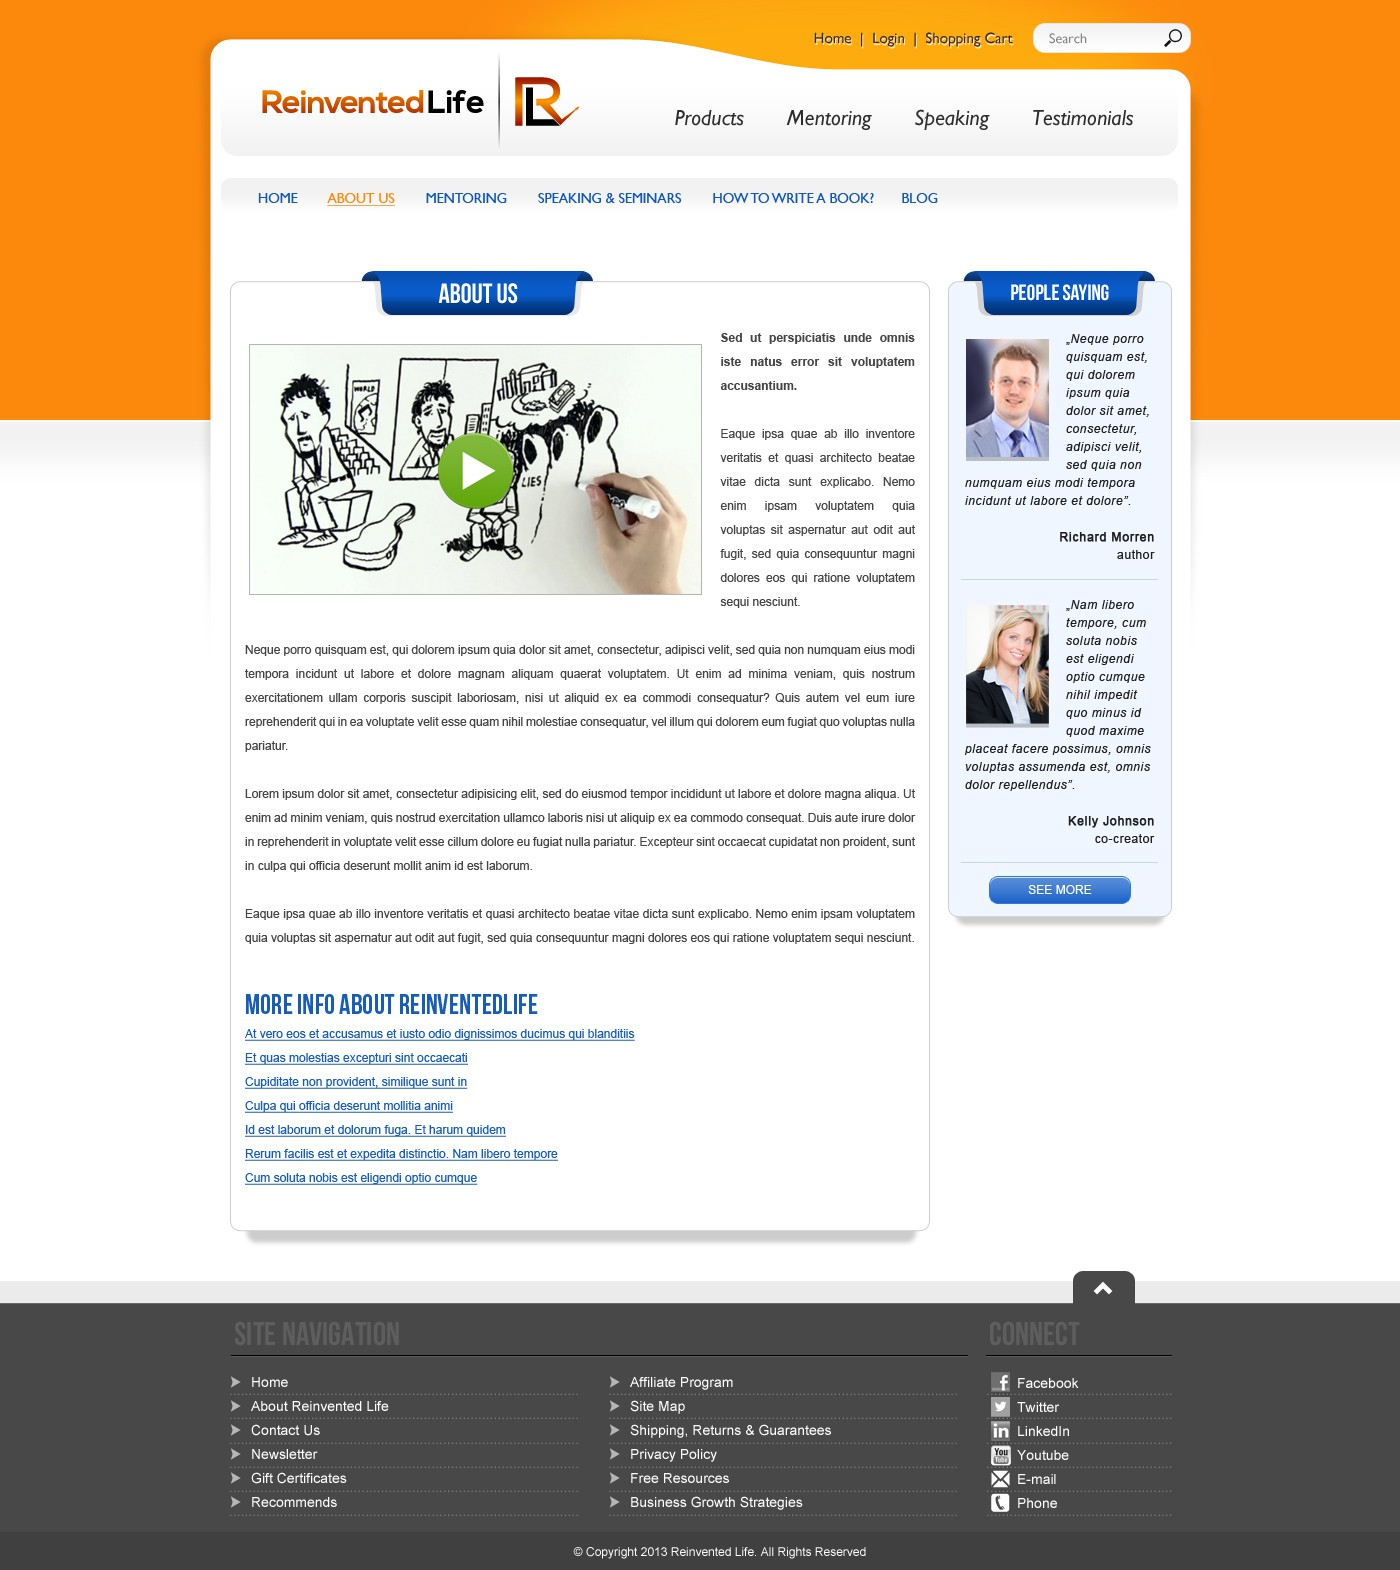 Help Reinvented Life with a new website design